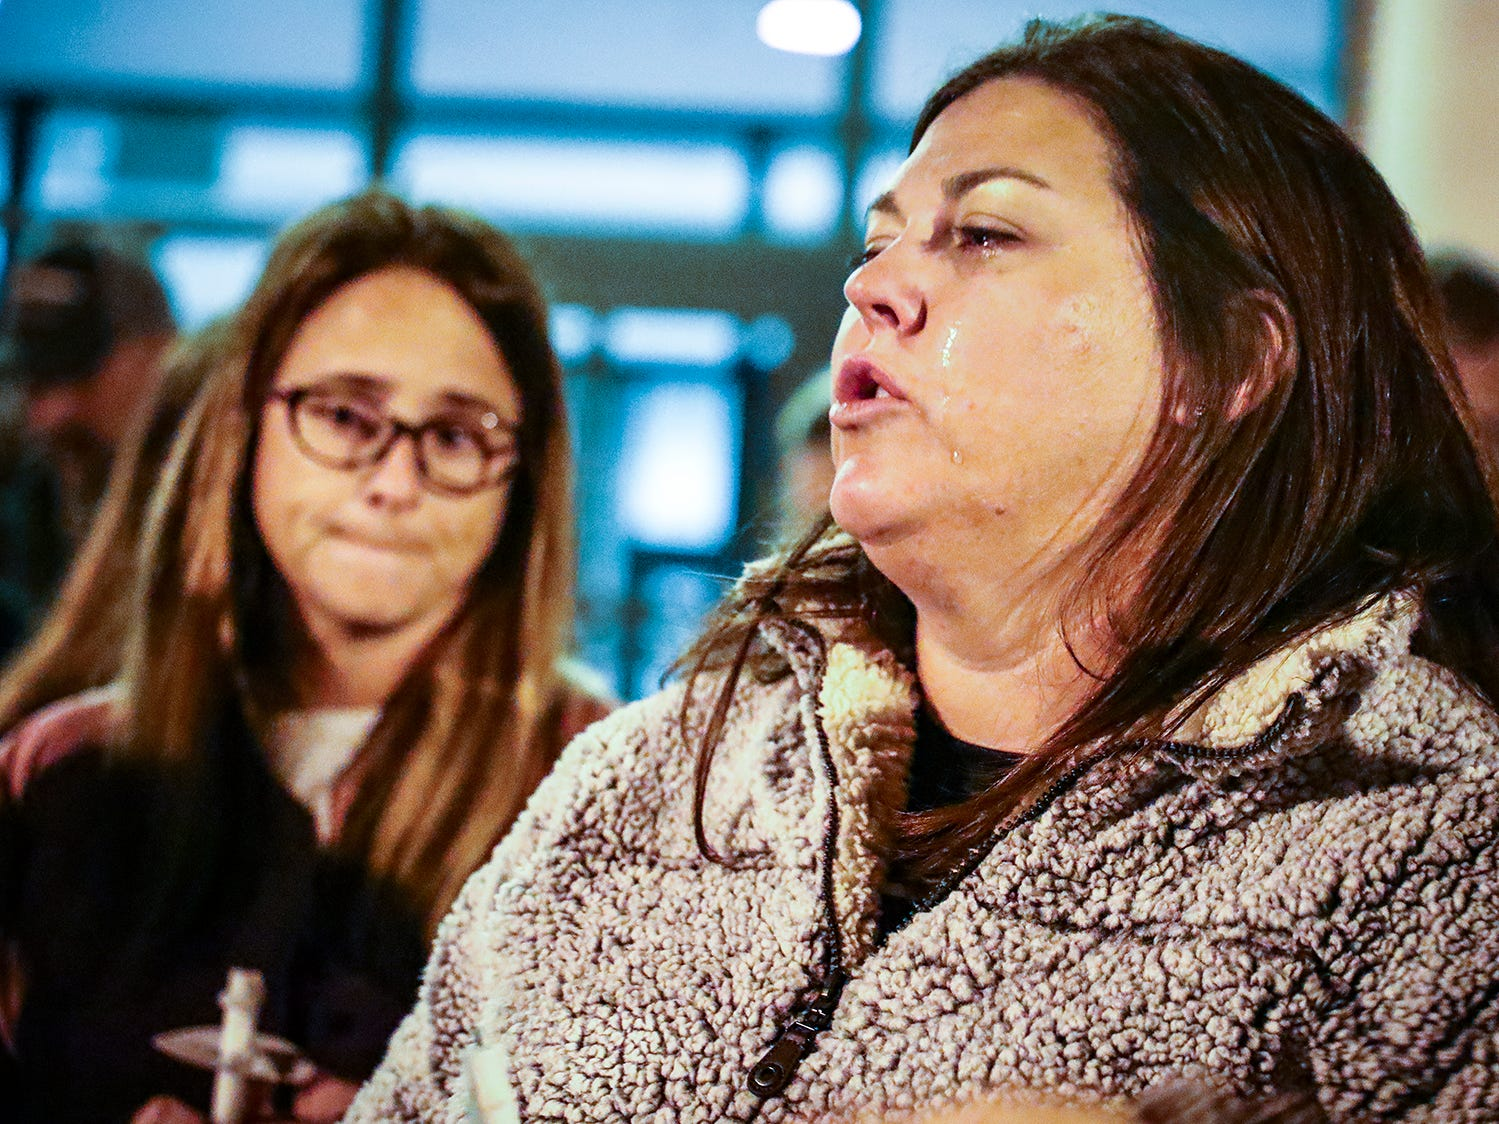 A tear streams down Laurel Jackson's face during a vigil at Eagleville School Tuesday in memory of Angie Walker, who was killed during an EF-2 tornado in Christiana, Tenn.